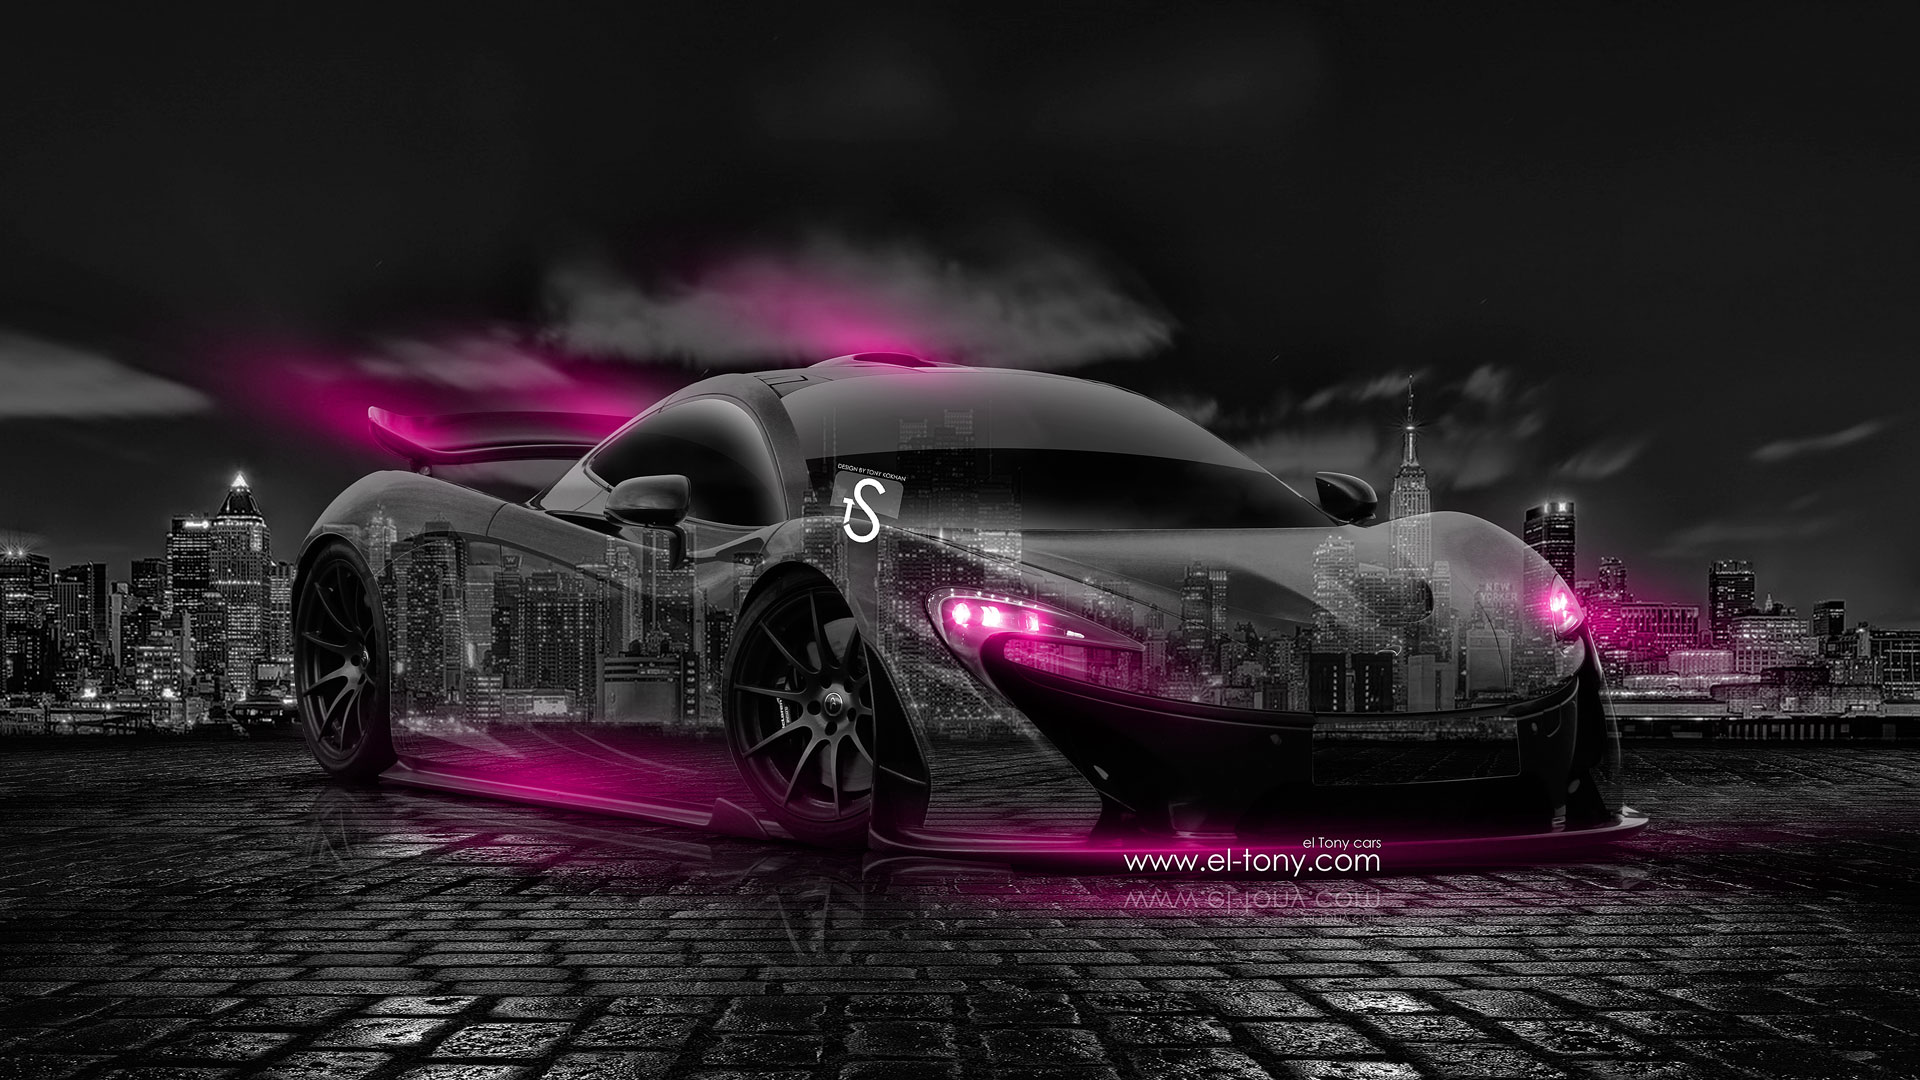 McLaren P1 Crystal City Car 2014 Pink Neon . McLaren P1 Open